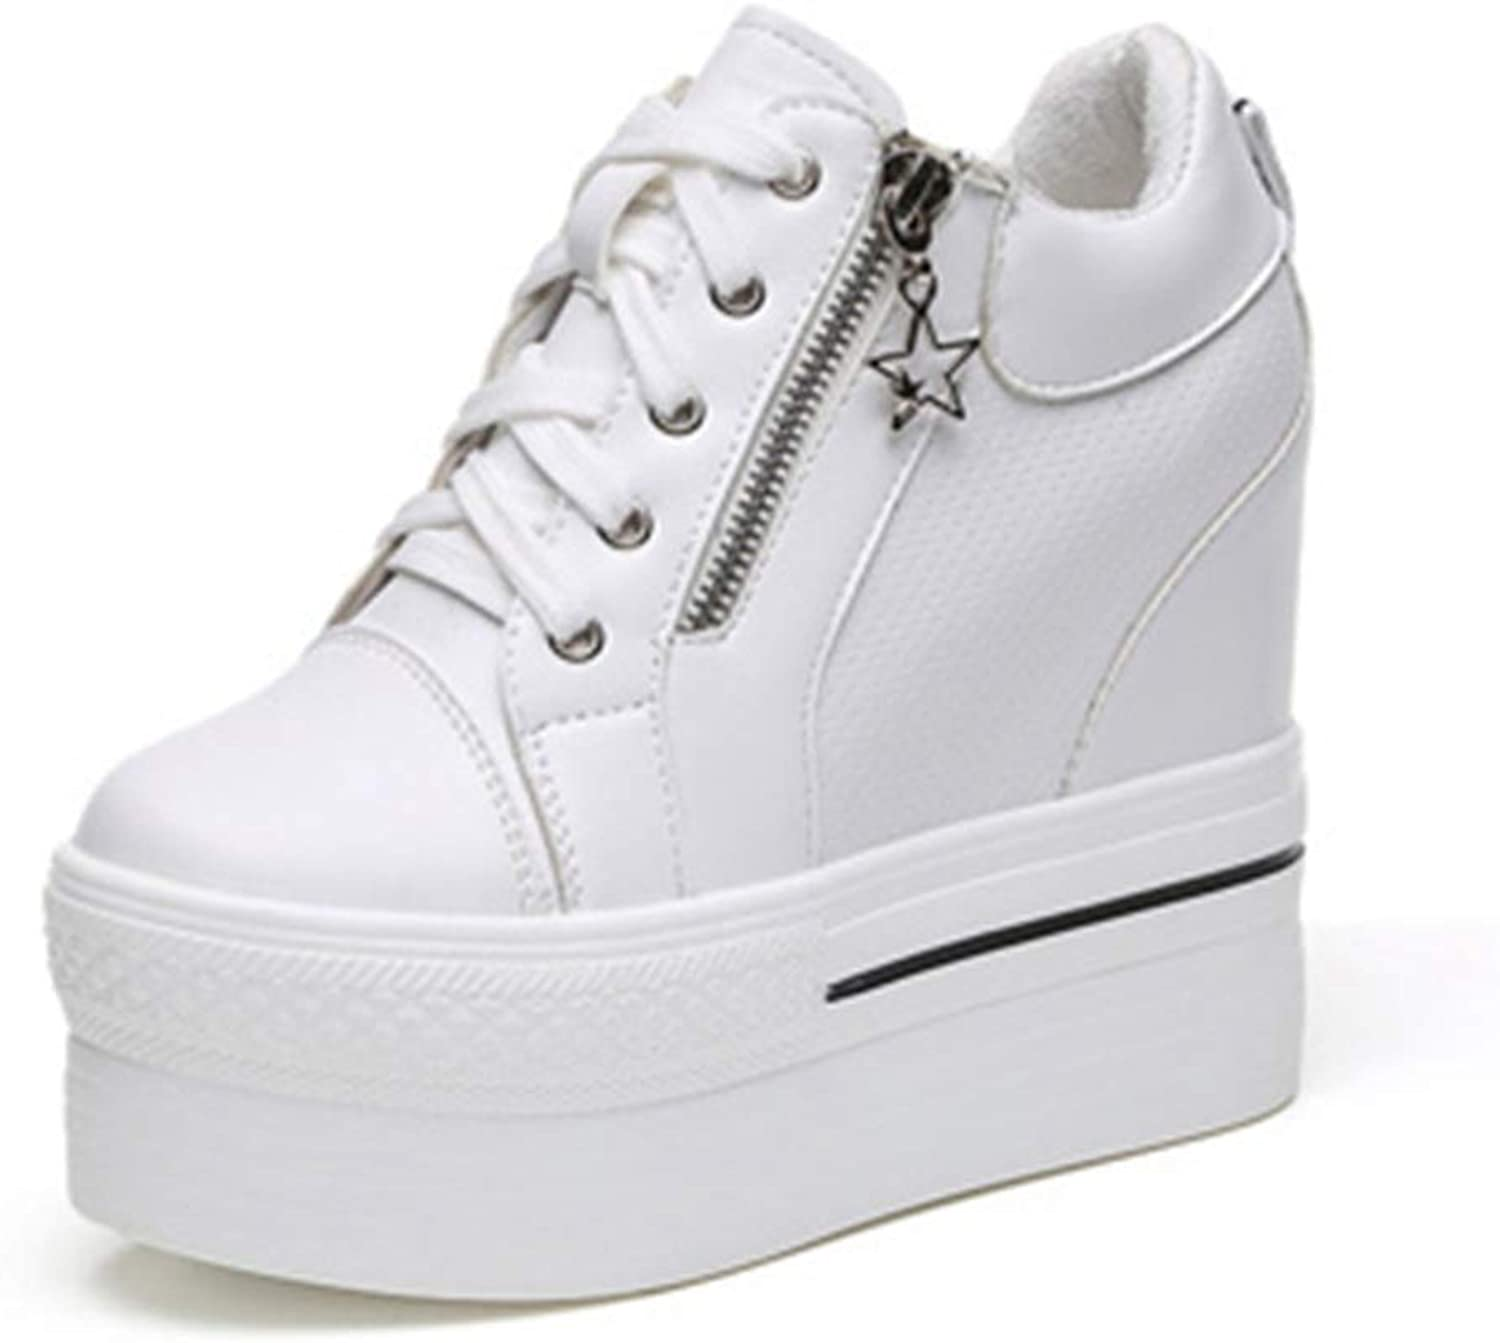 Wallhewb Women's Casual shoes Thick High Heels Increased Internal Wedges Platform shoes White Black Zipper Sneakers Slip On Rubber Sole with Heel Girls Tennis shoes White 6 M US Casual shoes